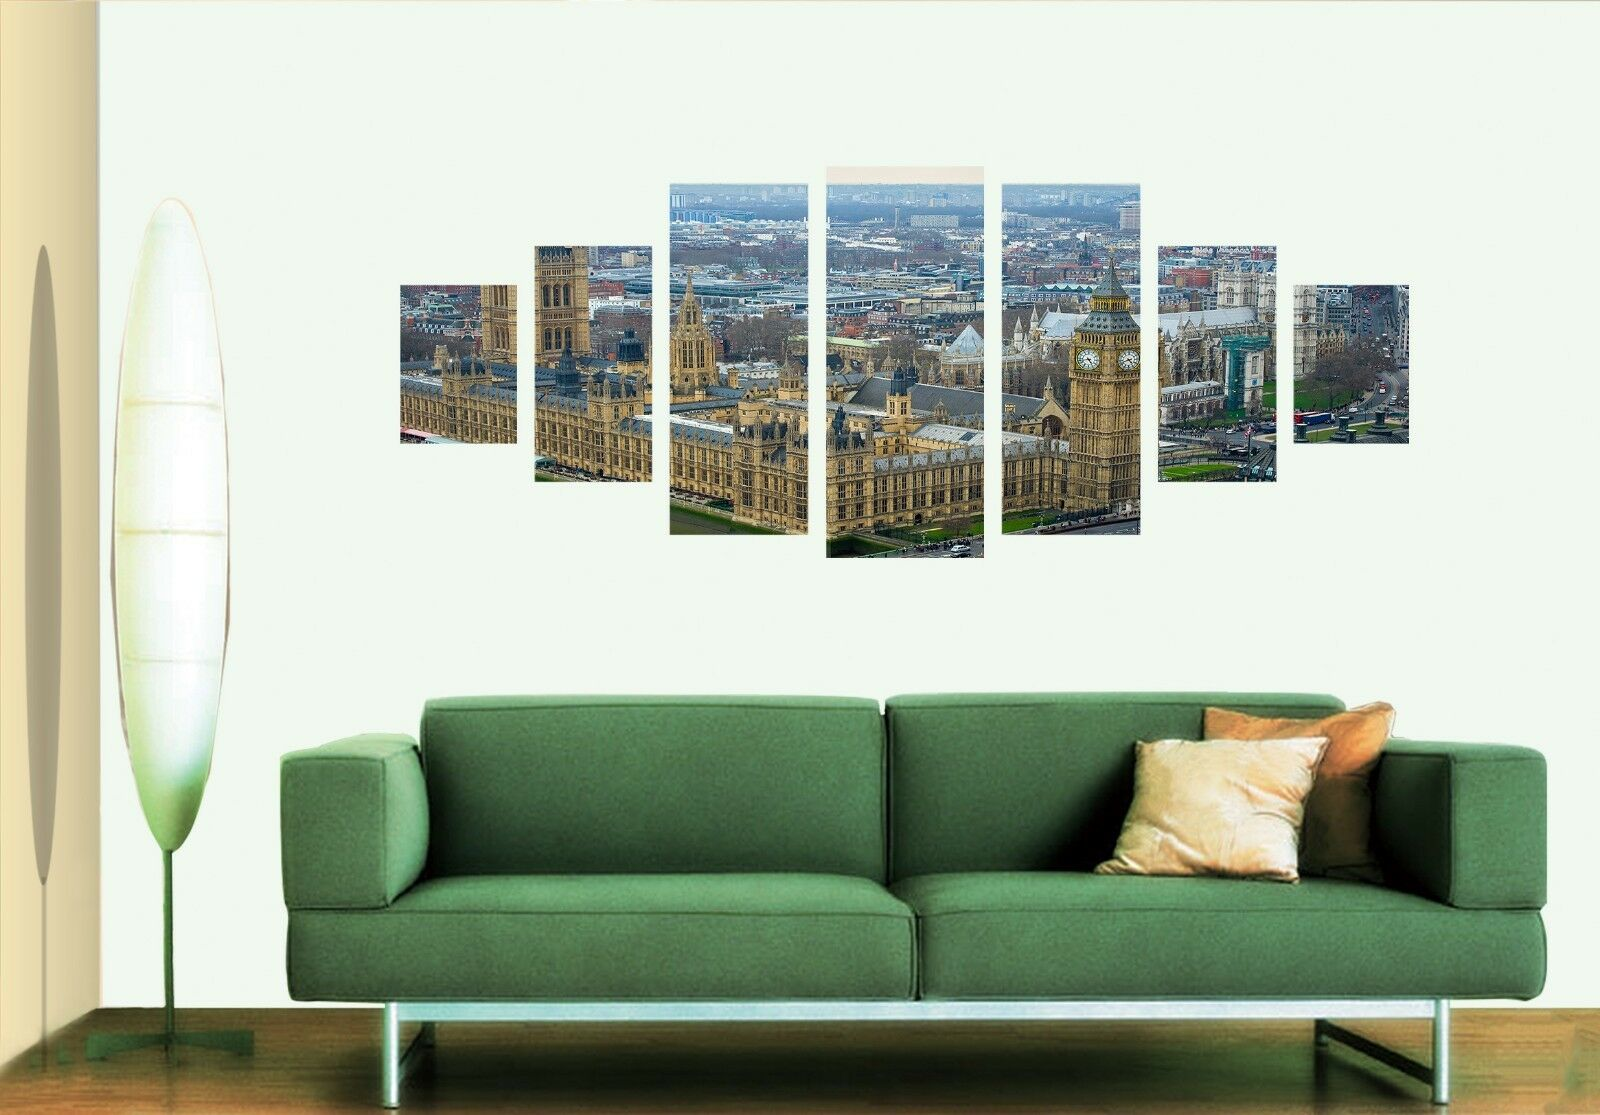 3D Street Building 72 Unframed Print Wall Paper Decal Wall Deco Indoor AJ Jenny